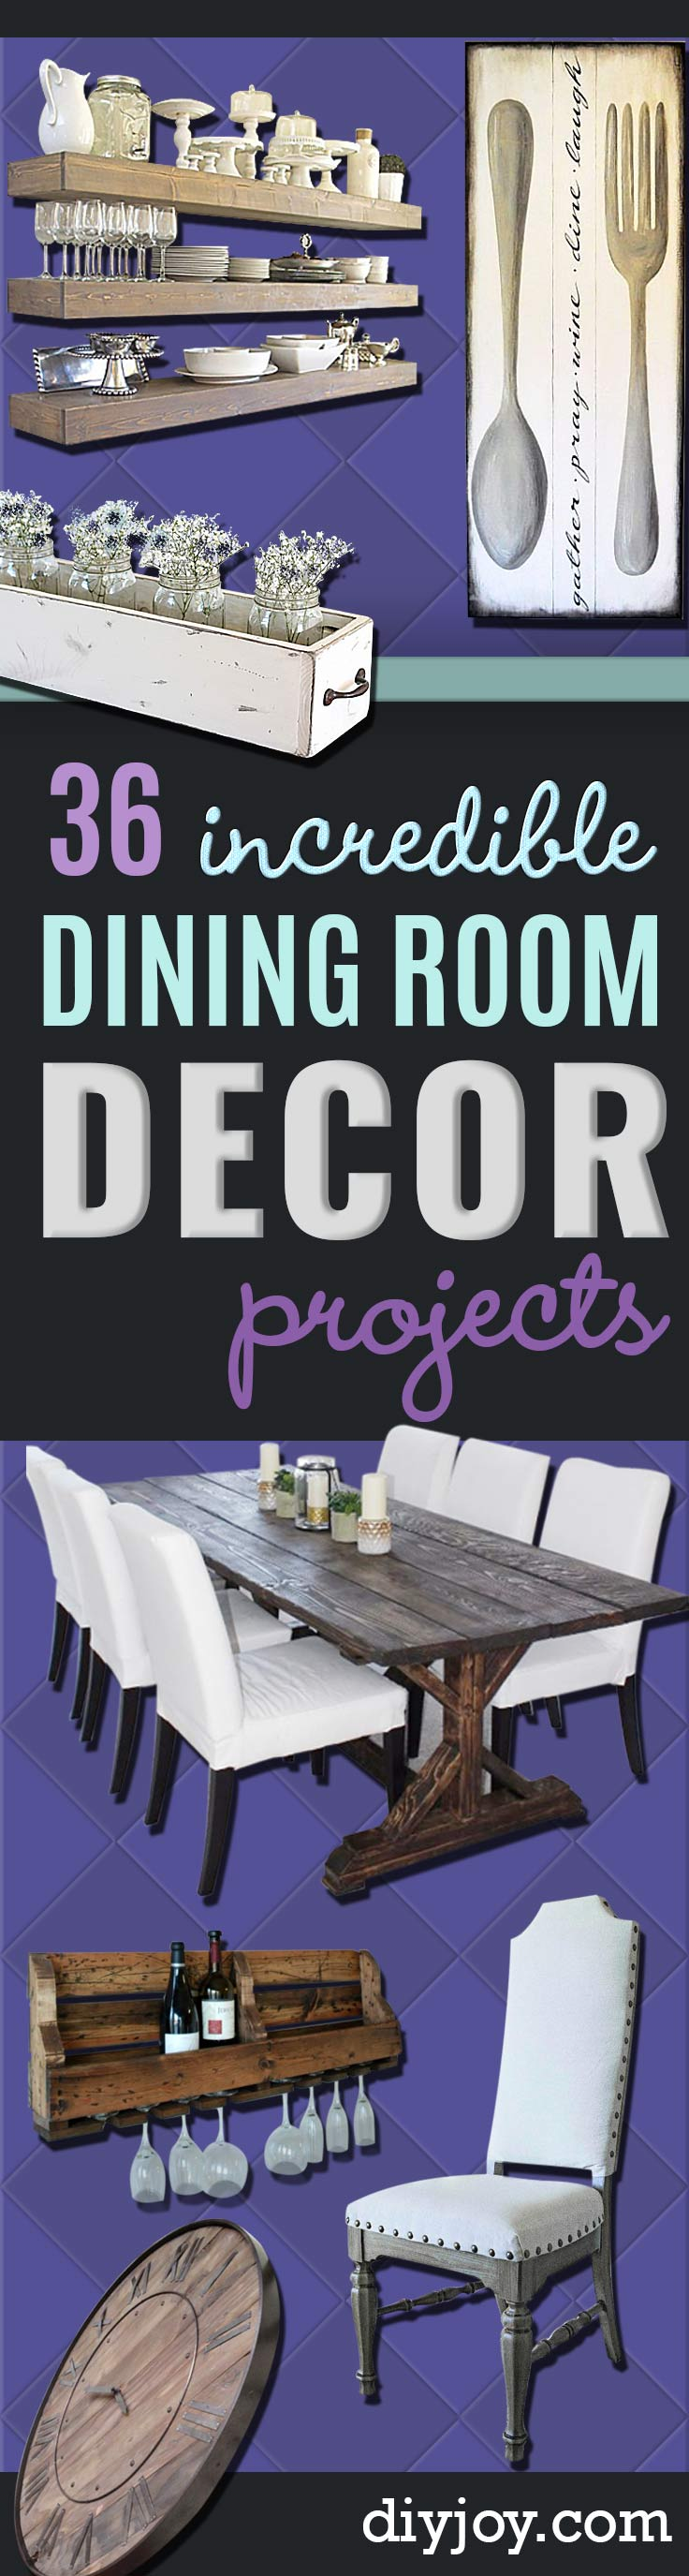 DIY Dining Room Decor Ideas - Cool DIY Projects for Table, Chairs, Decorations, Wall Art, Bench Plans, Storage, Buffet, Hutch and Lighting Tutorials